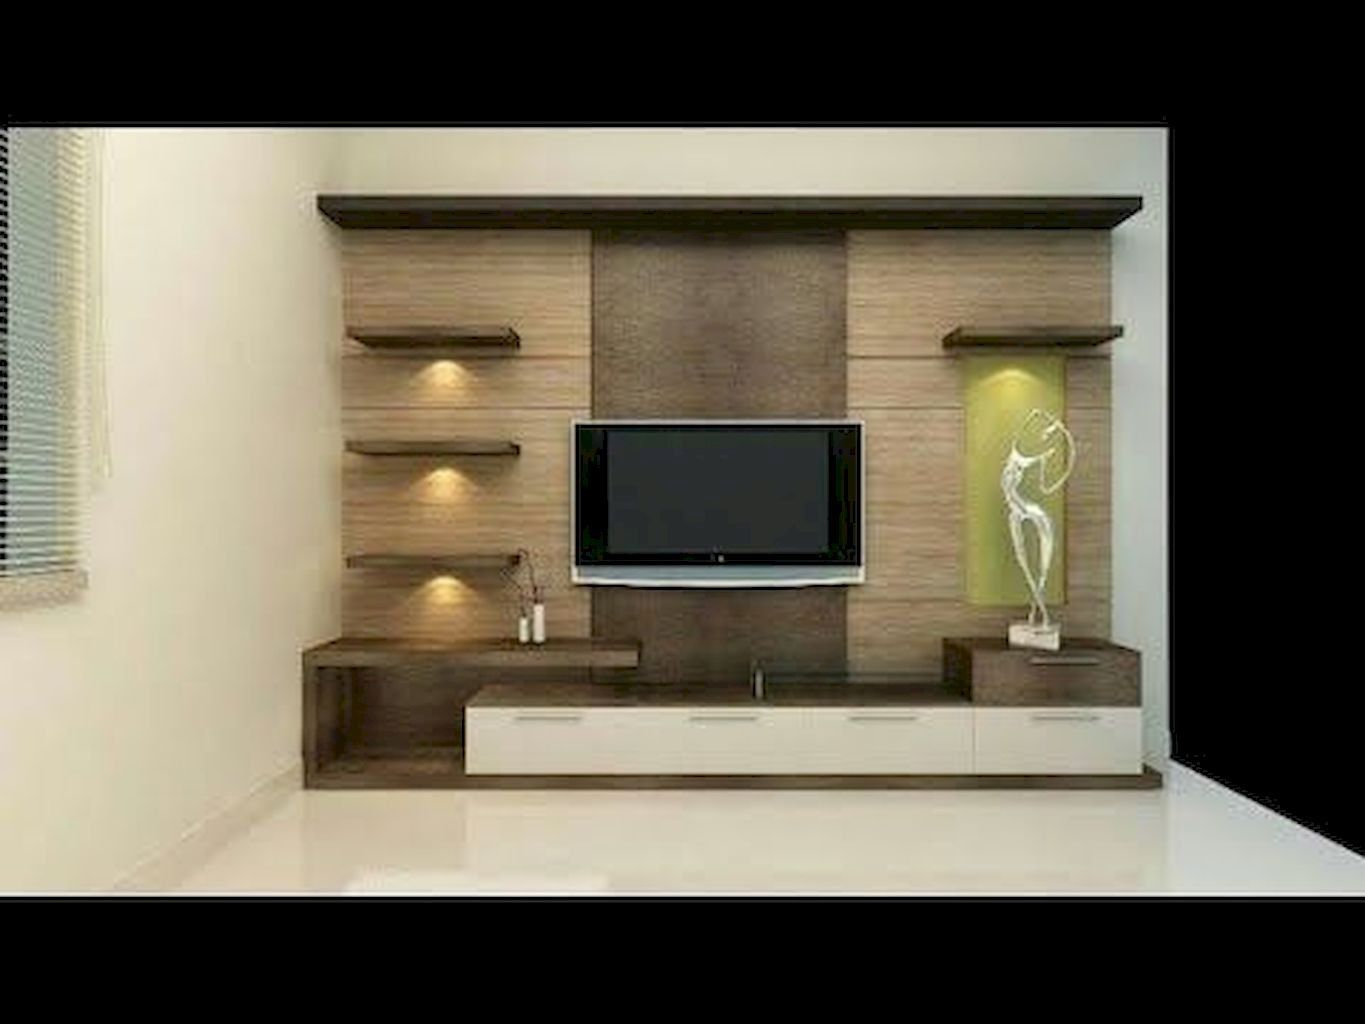 Wondrous 121 Simple Cool Creative Wall Decorating Ideas That Are Easy To Apply In Your Home Https Modern Tv Wall Units Tv Wall Design Simple Tv Unit Design